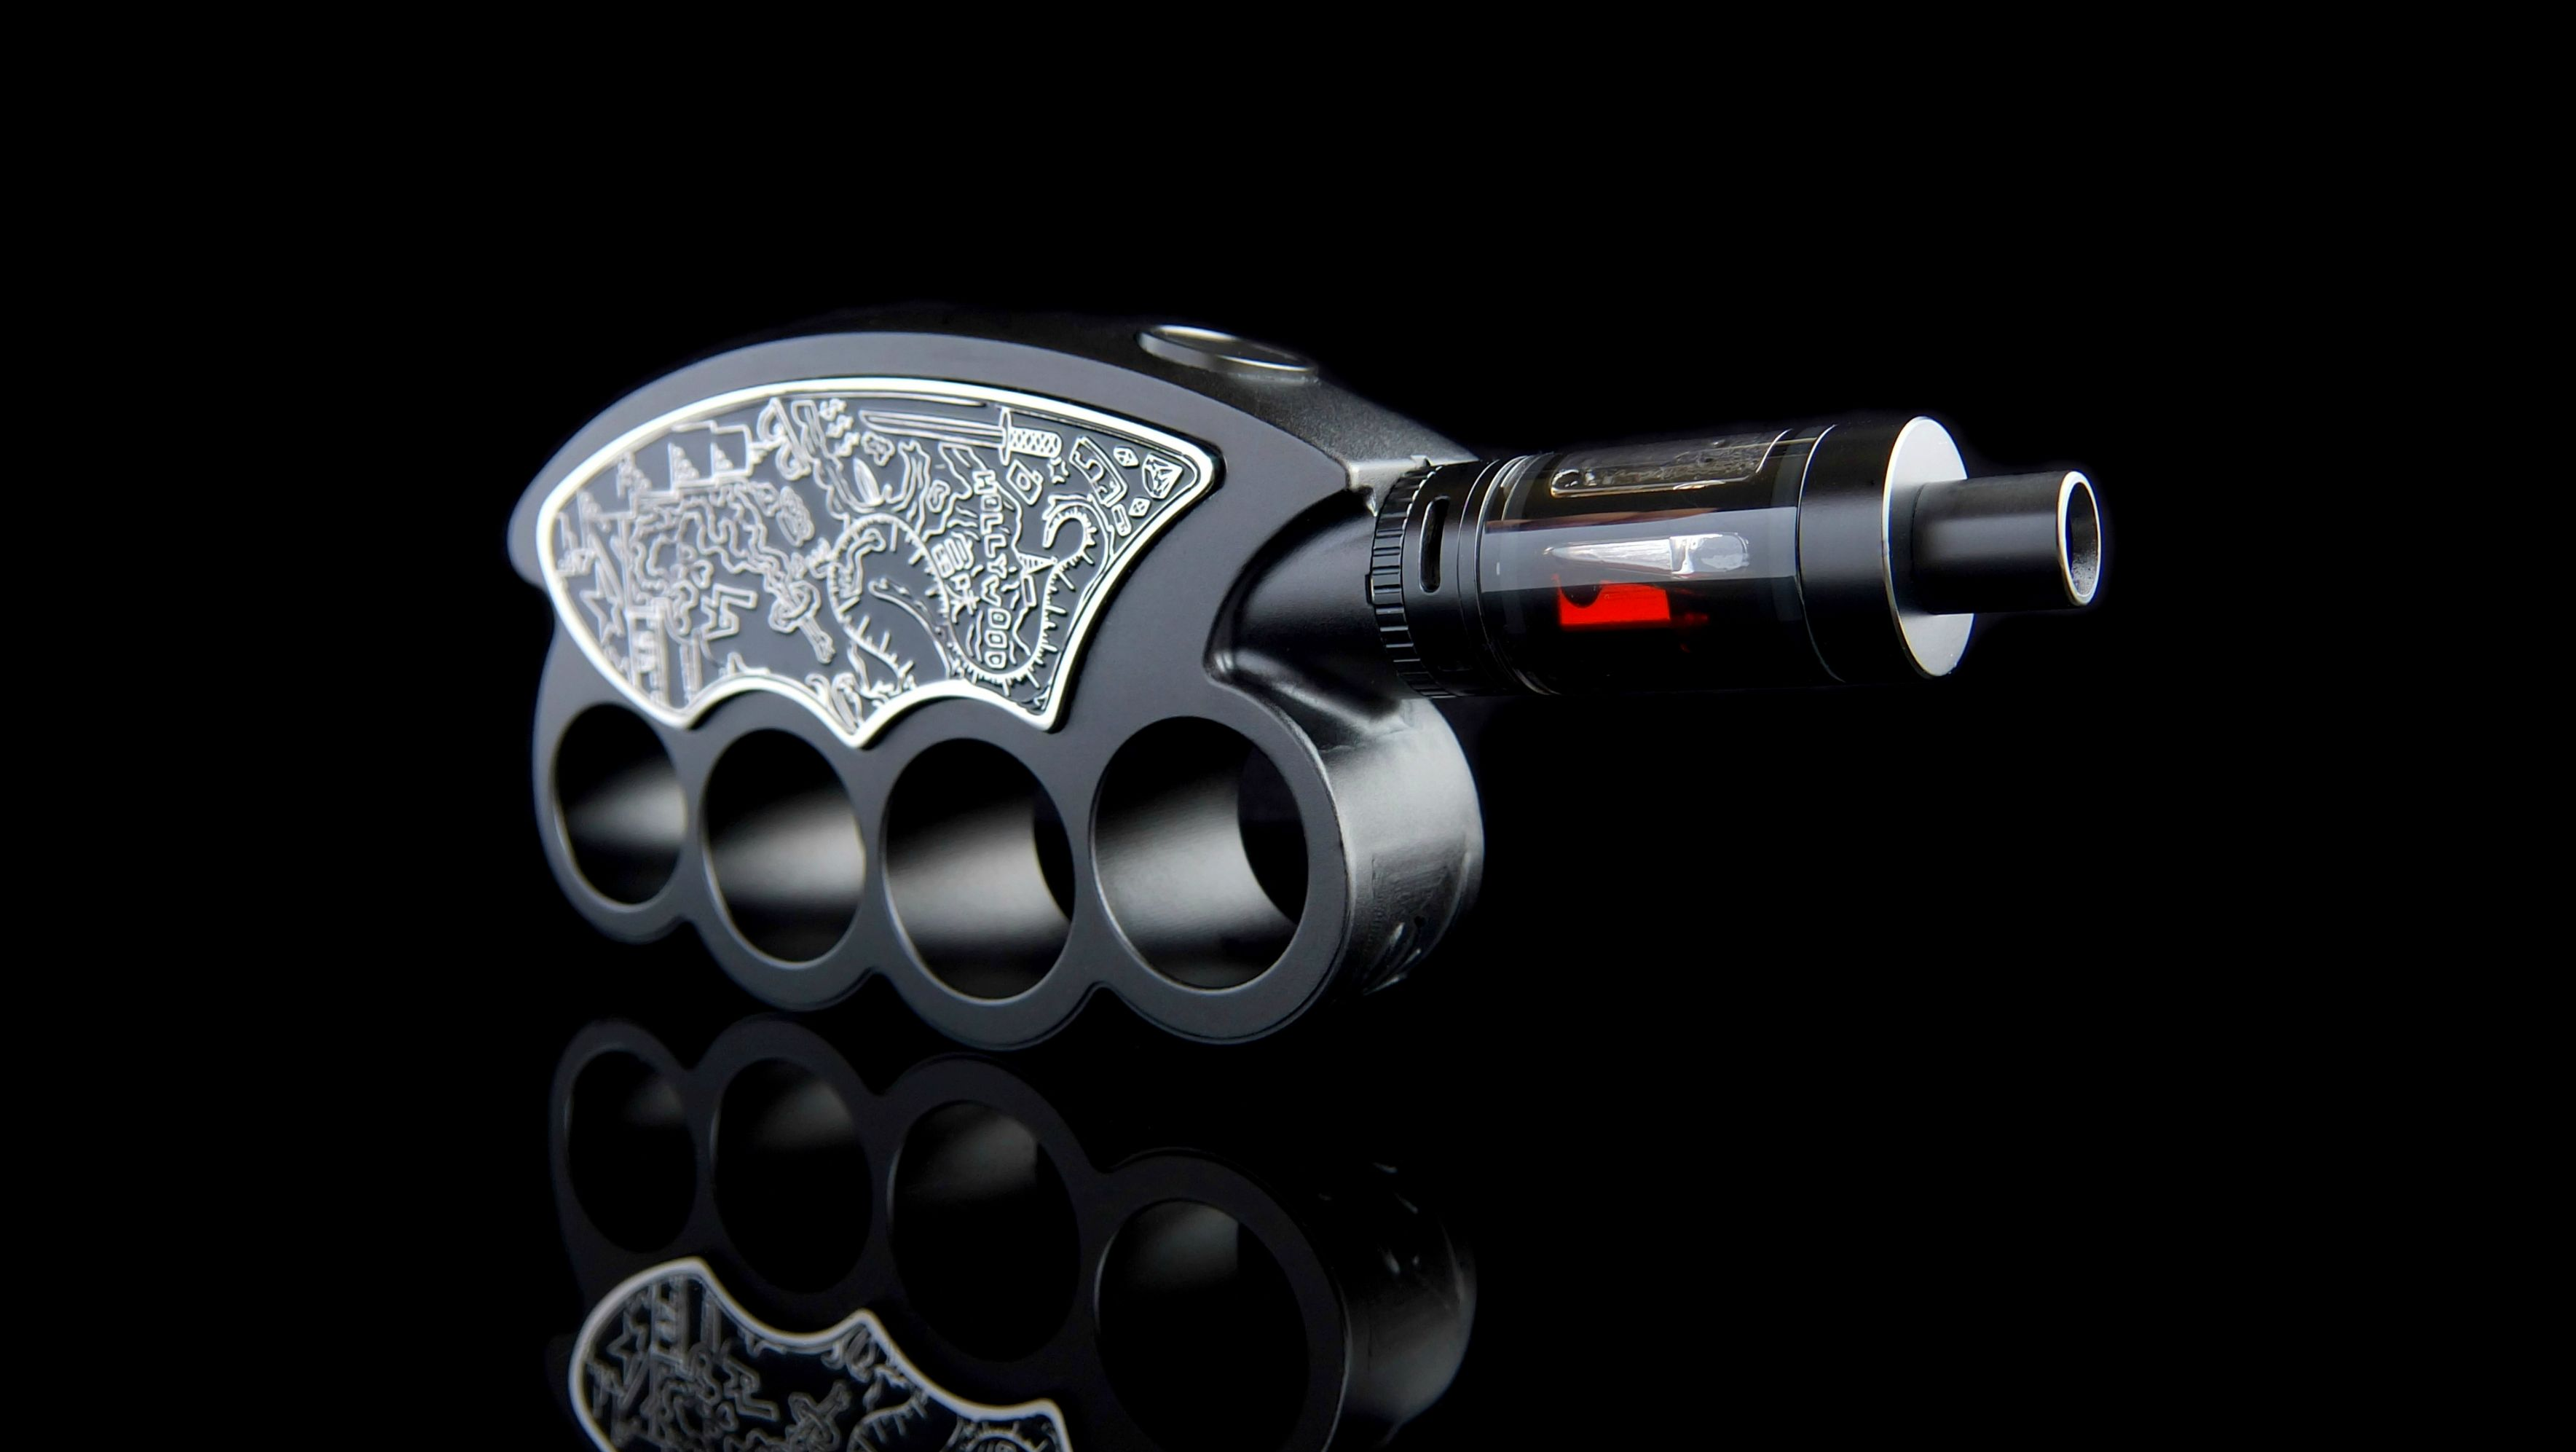 Vape Mods Wallpapers High Quality Download Free